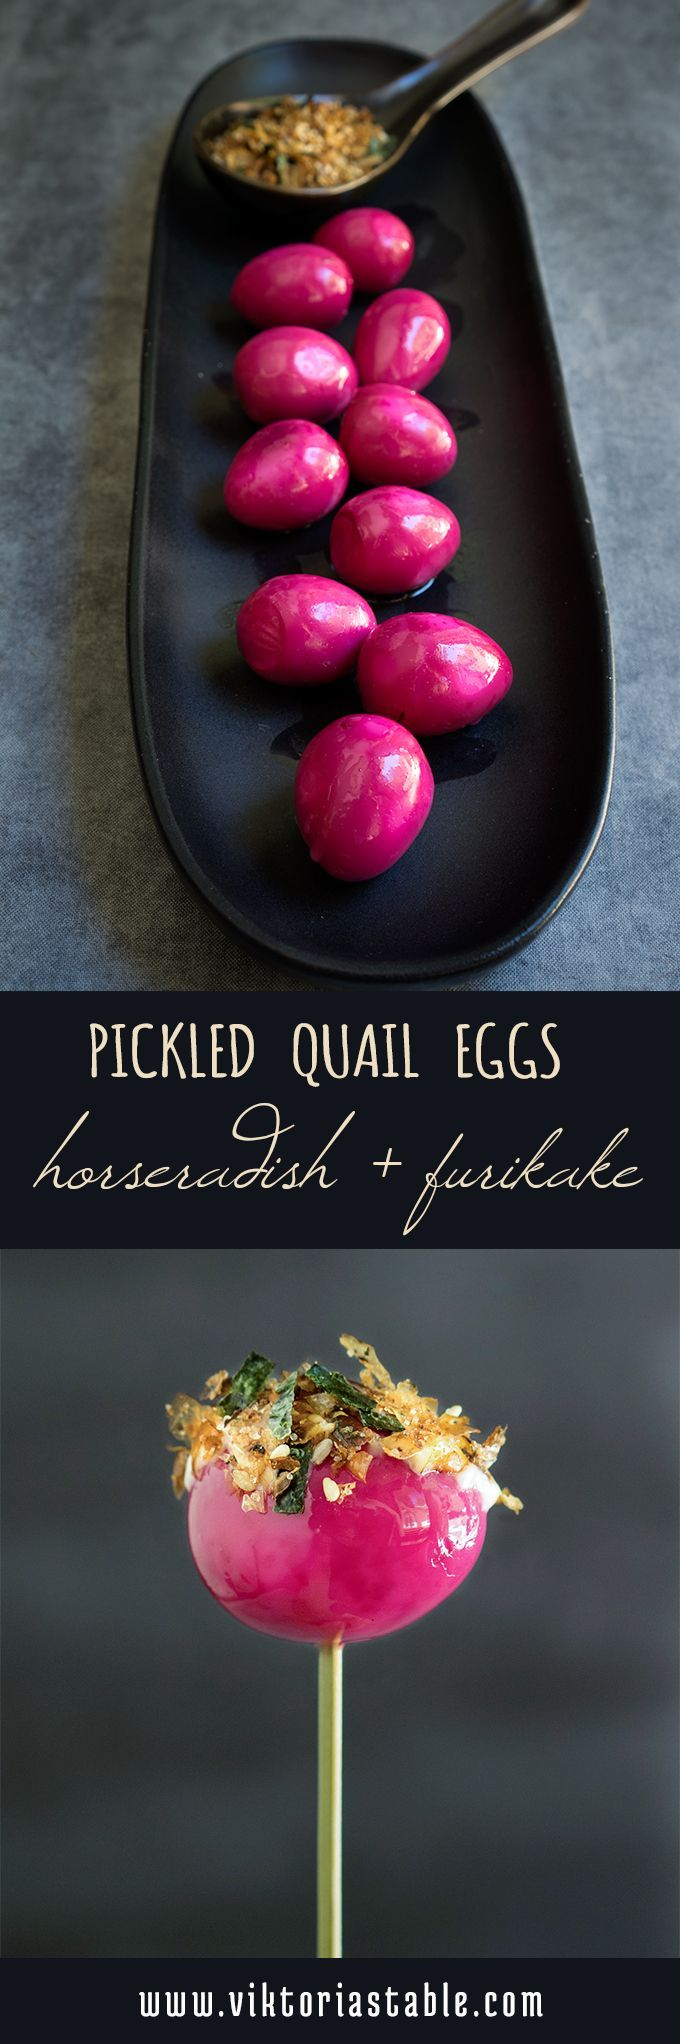 These cute pickled quail eggs are as delicious as they are stunning to look at - served with horseradish mayo, and furikake, they make a spectacular appetizer. |   #quail #quaileggs #pickled